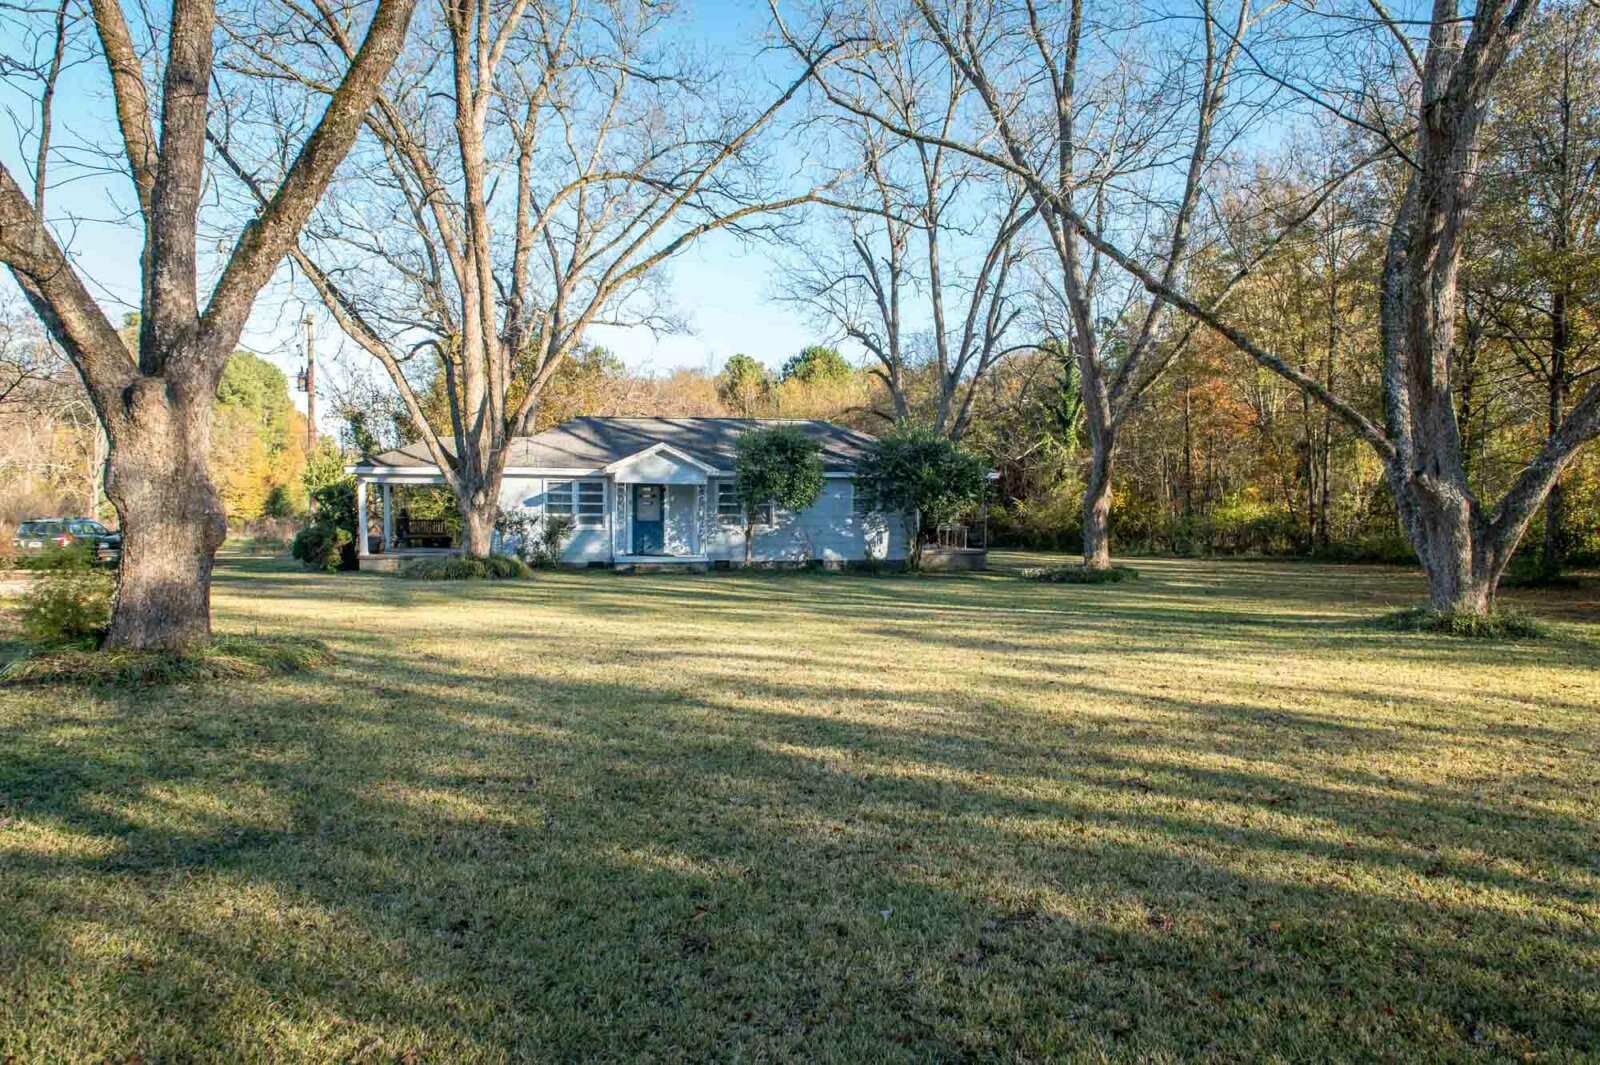 Looking to sell your home in the greater Athens Ga area? Call George at 706-426-1082